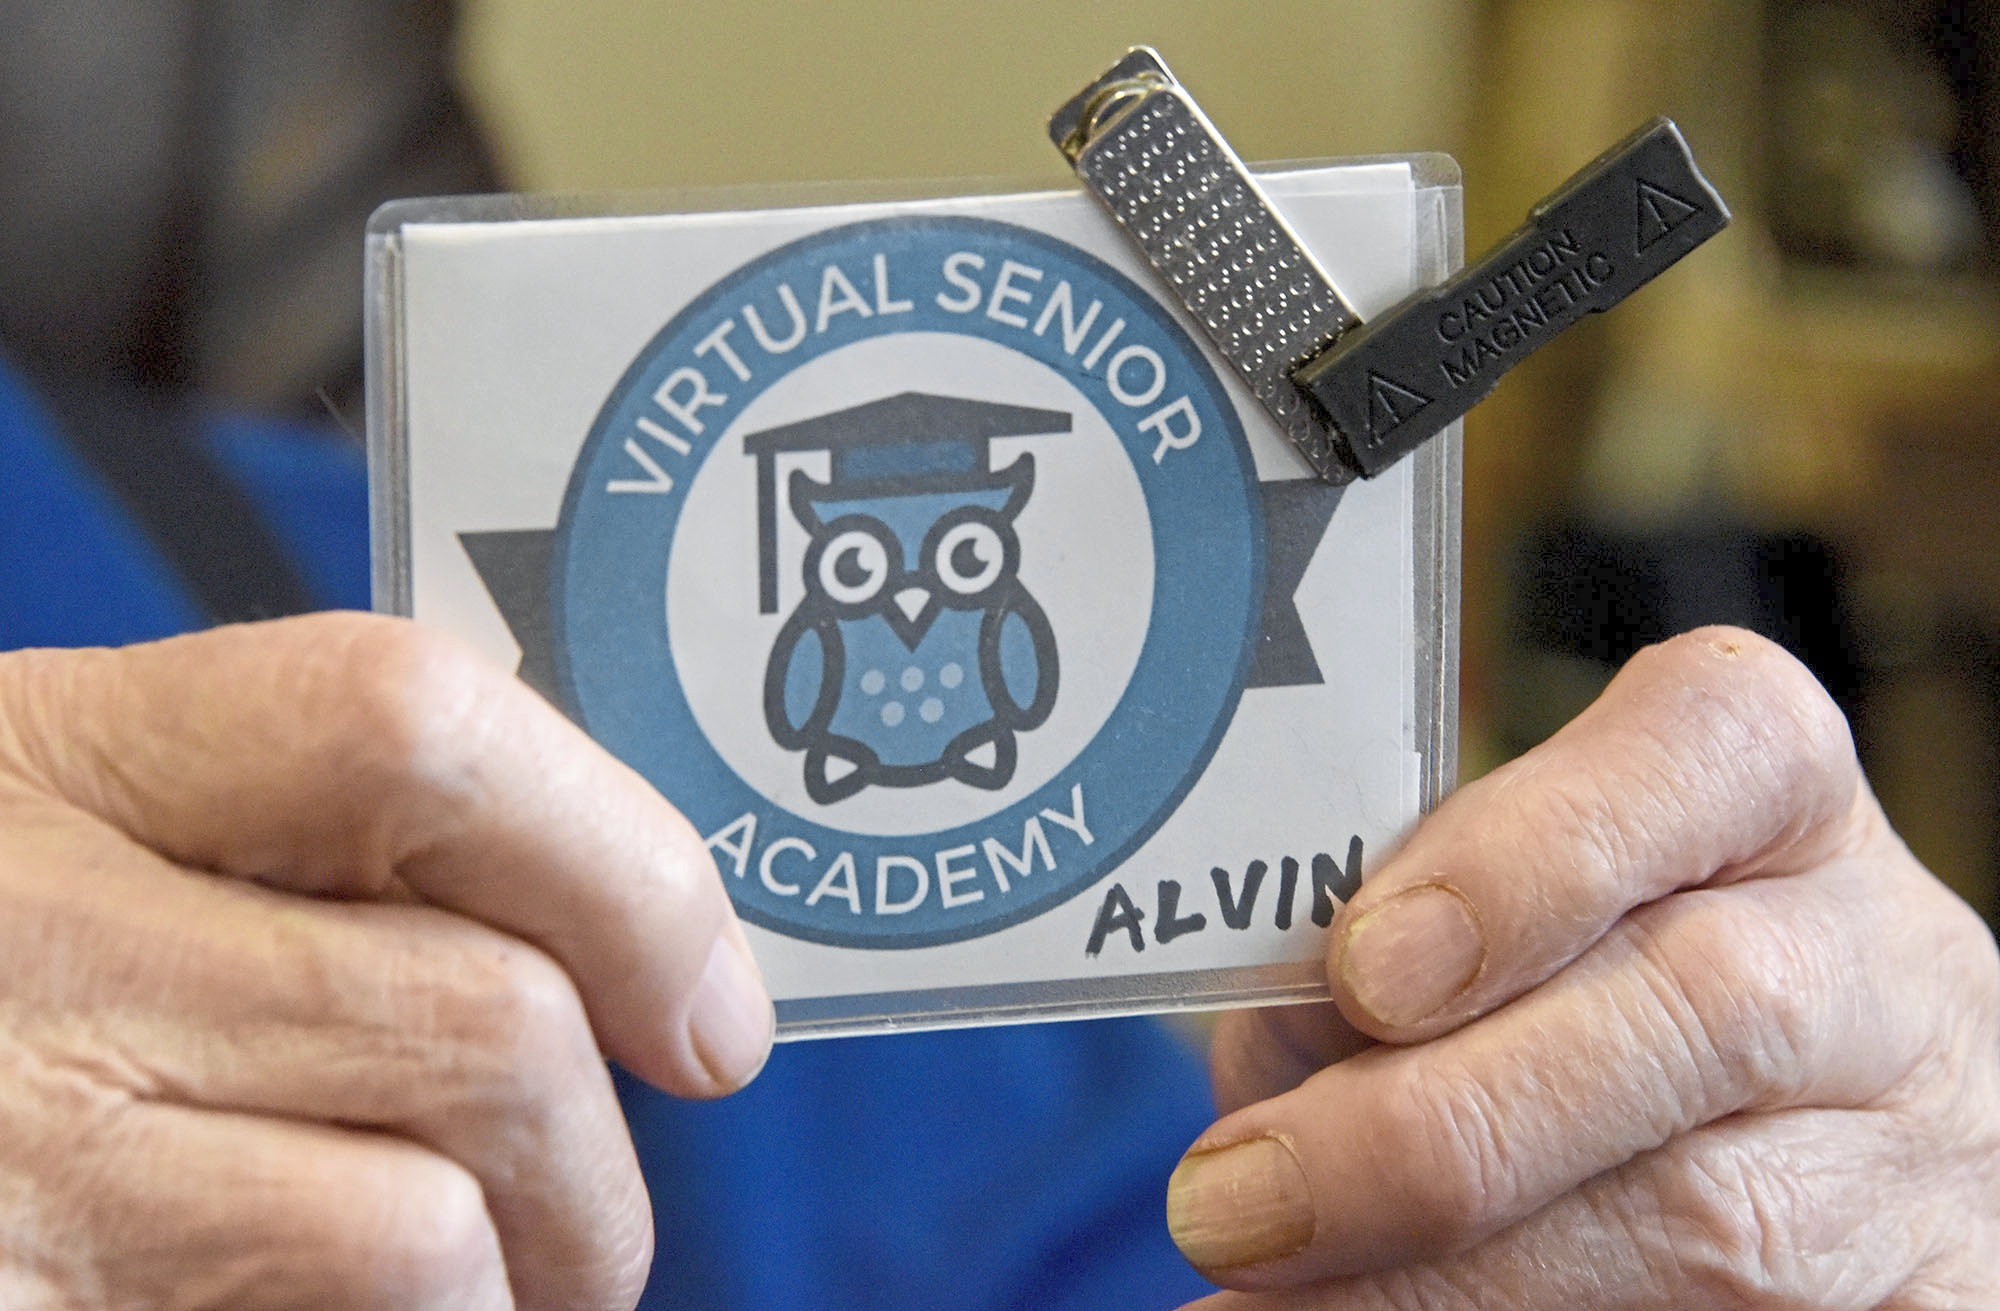 20180316dsSENIORACADEMY0319Local07-6 Al Fineman, 97, holds his Virtual Senior Academy logo, at his home at Riverview Towers apartments in Squirrel Hill. He is part of the Jewish Healthcare Foundation-sponsored Virtual Senior Academy, using their home computers to take various online classes and interact with each other through the video conferencing.